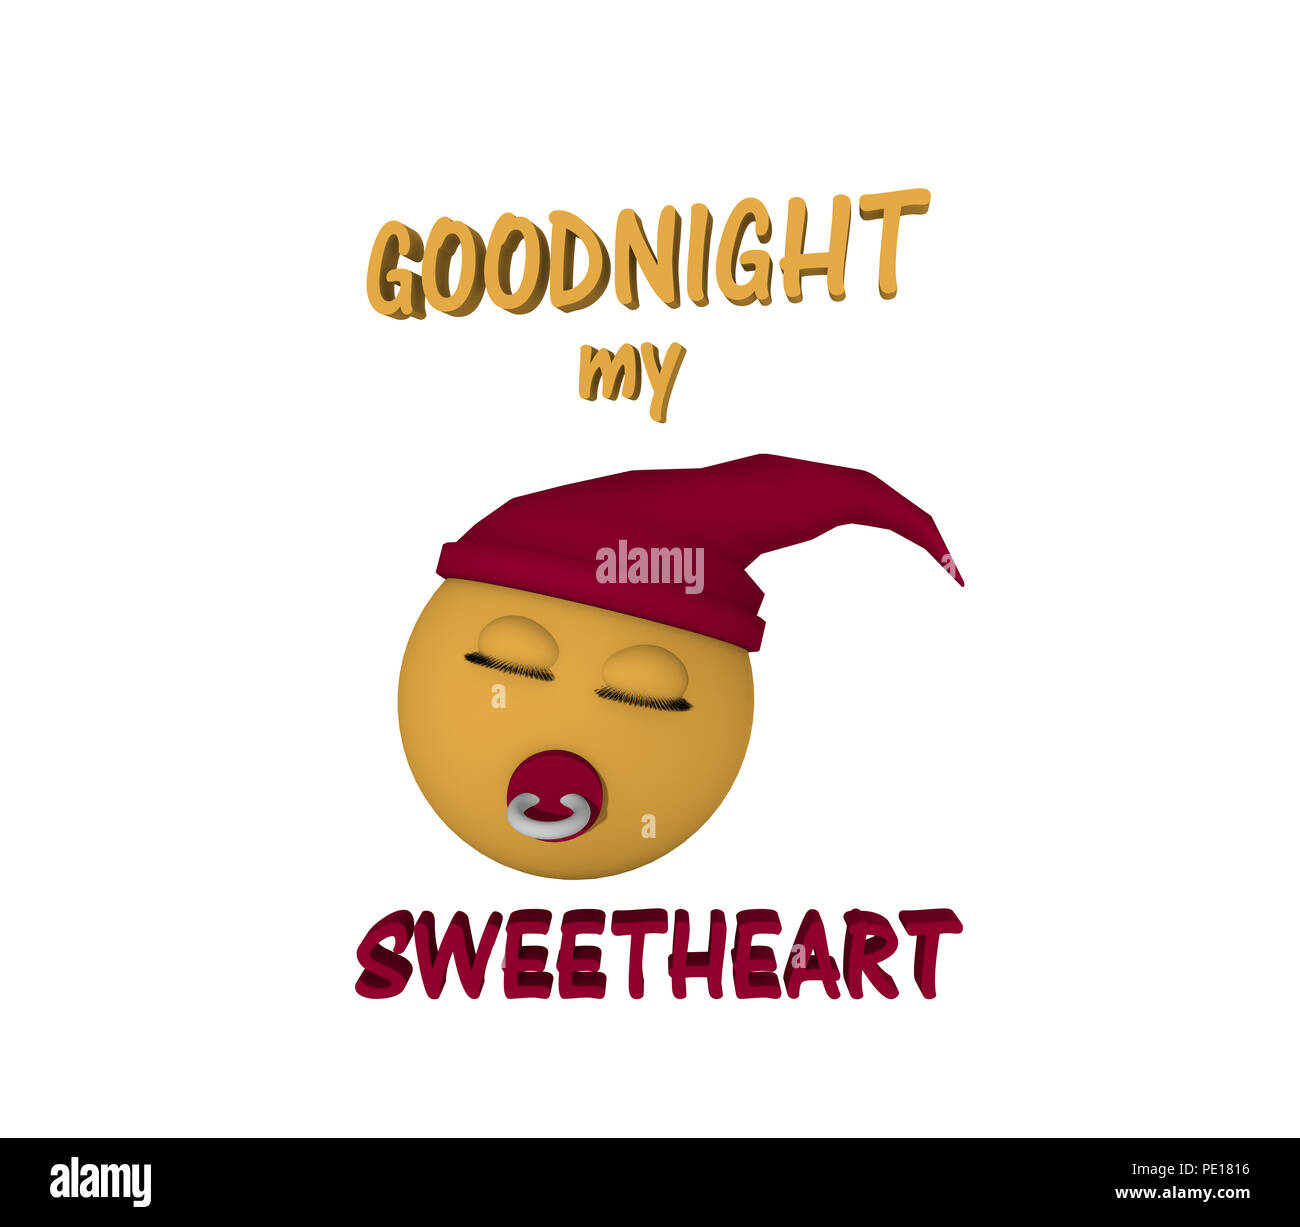 Emoticon with sleepyhead, pacifier and text. 3d rendering - Stock Image